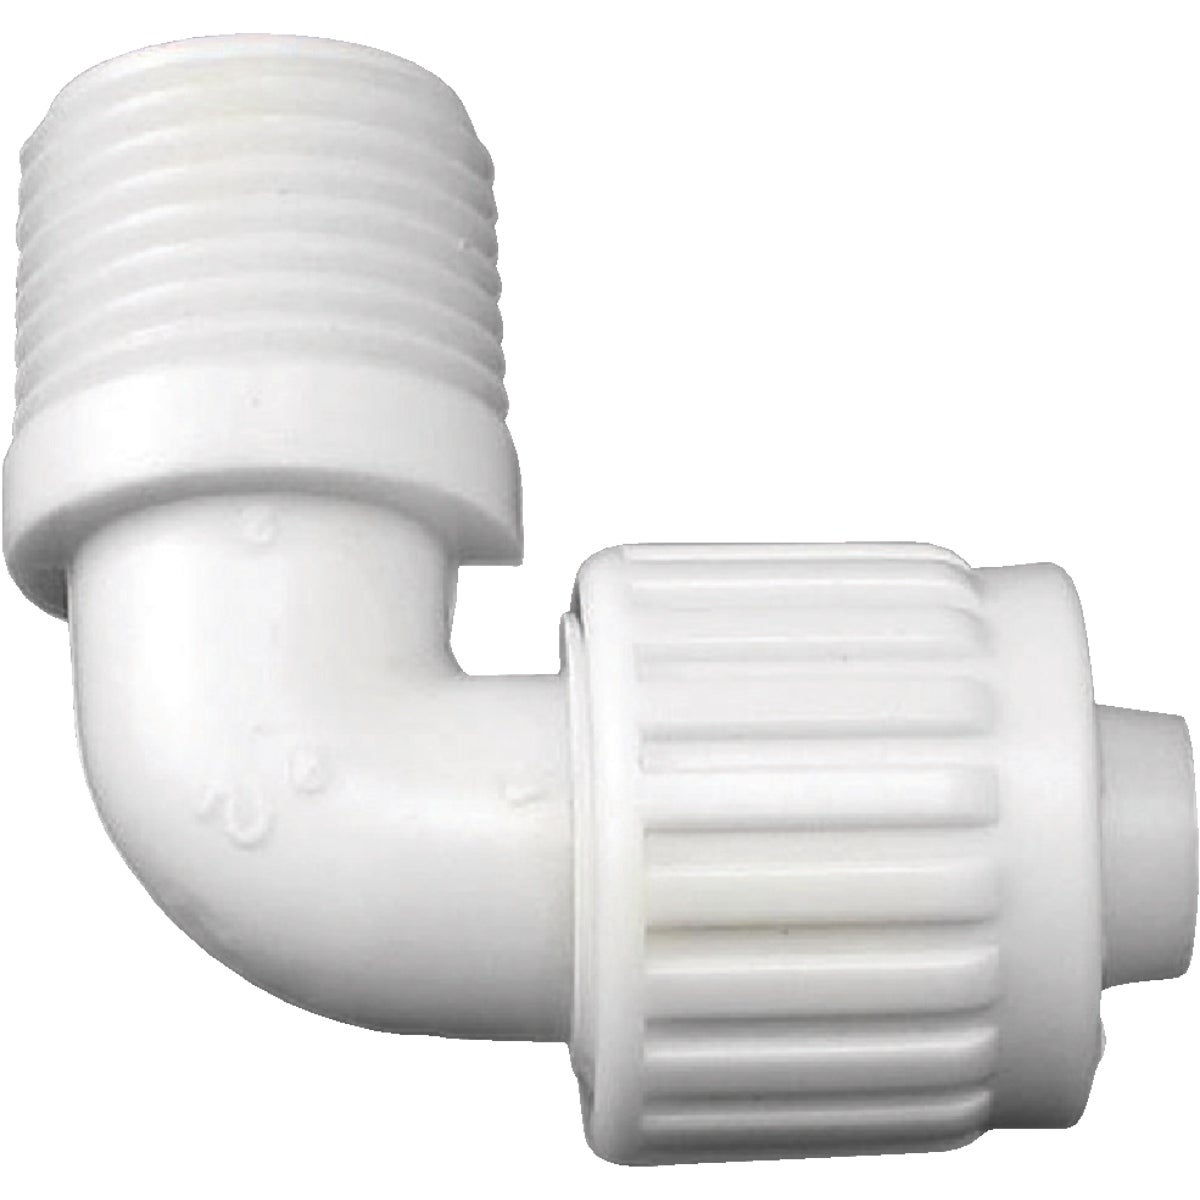 1/2X1/2MPT ELBOW - 16803 by Flair It West